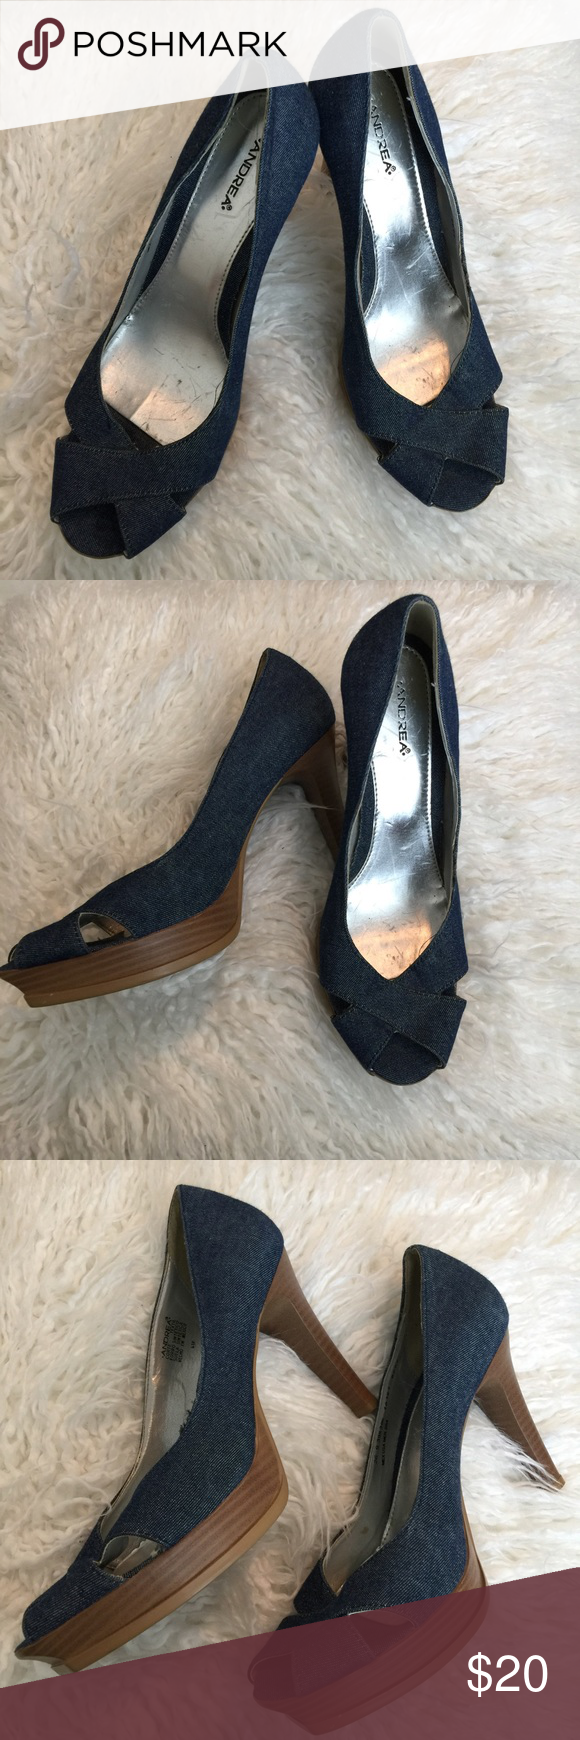 "Andrea Blue Jean Heels Size 9 Super Comfy!! Size 9 Andrea Blue Jean 4"" heels Good condition Andrea  Shoes Heels"